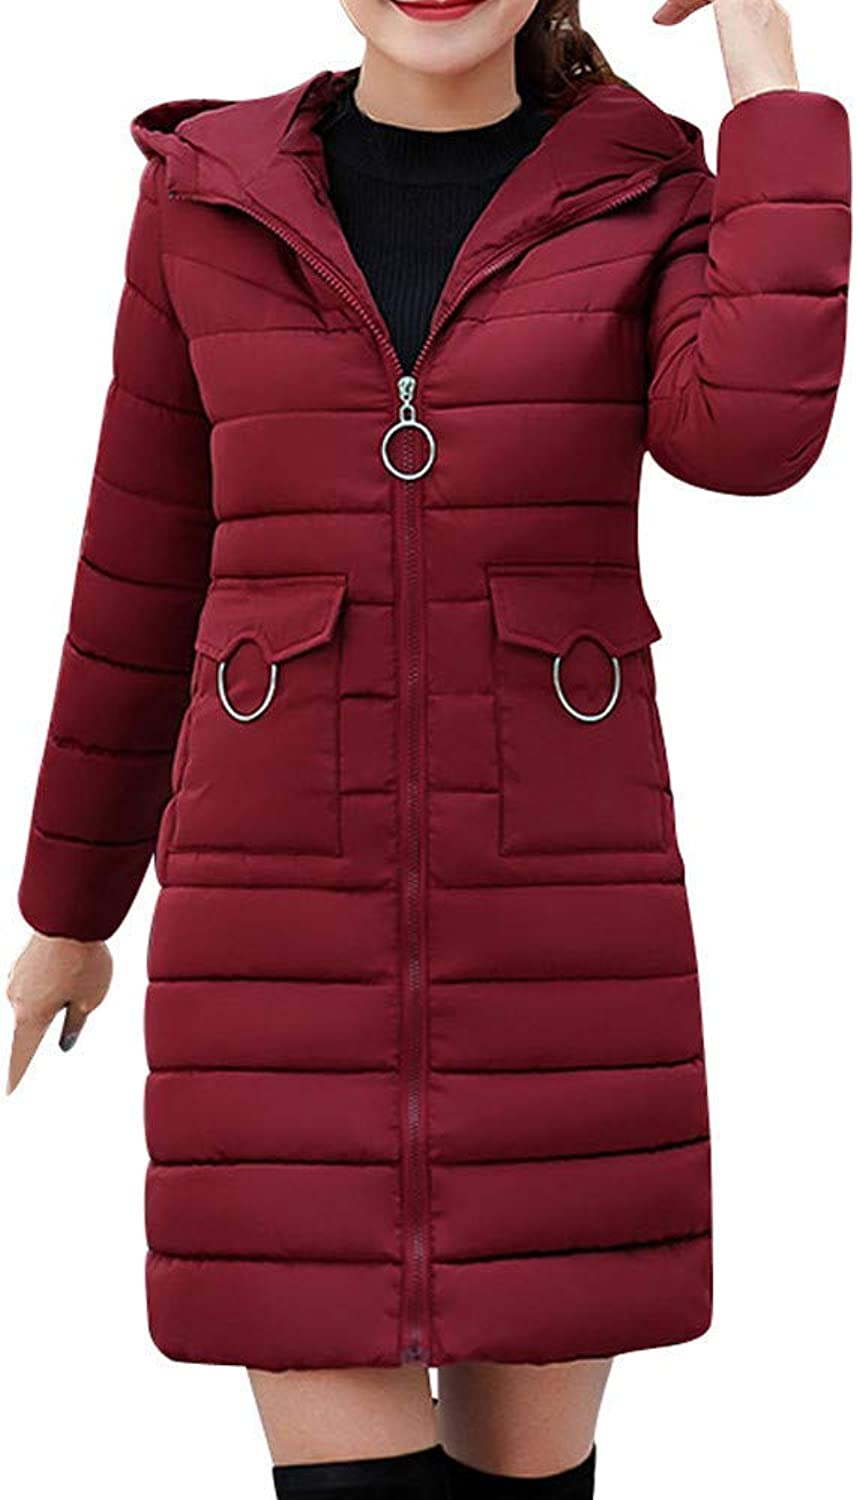 Women Winter Warm Coat Hooded Thick Warm Skinny Jacket Long Sleeve Coat Fashion Leisure Cosy Wild Tight Super Quality for Womens (color   Wein, Size   XXL)